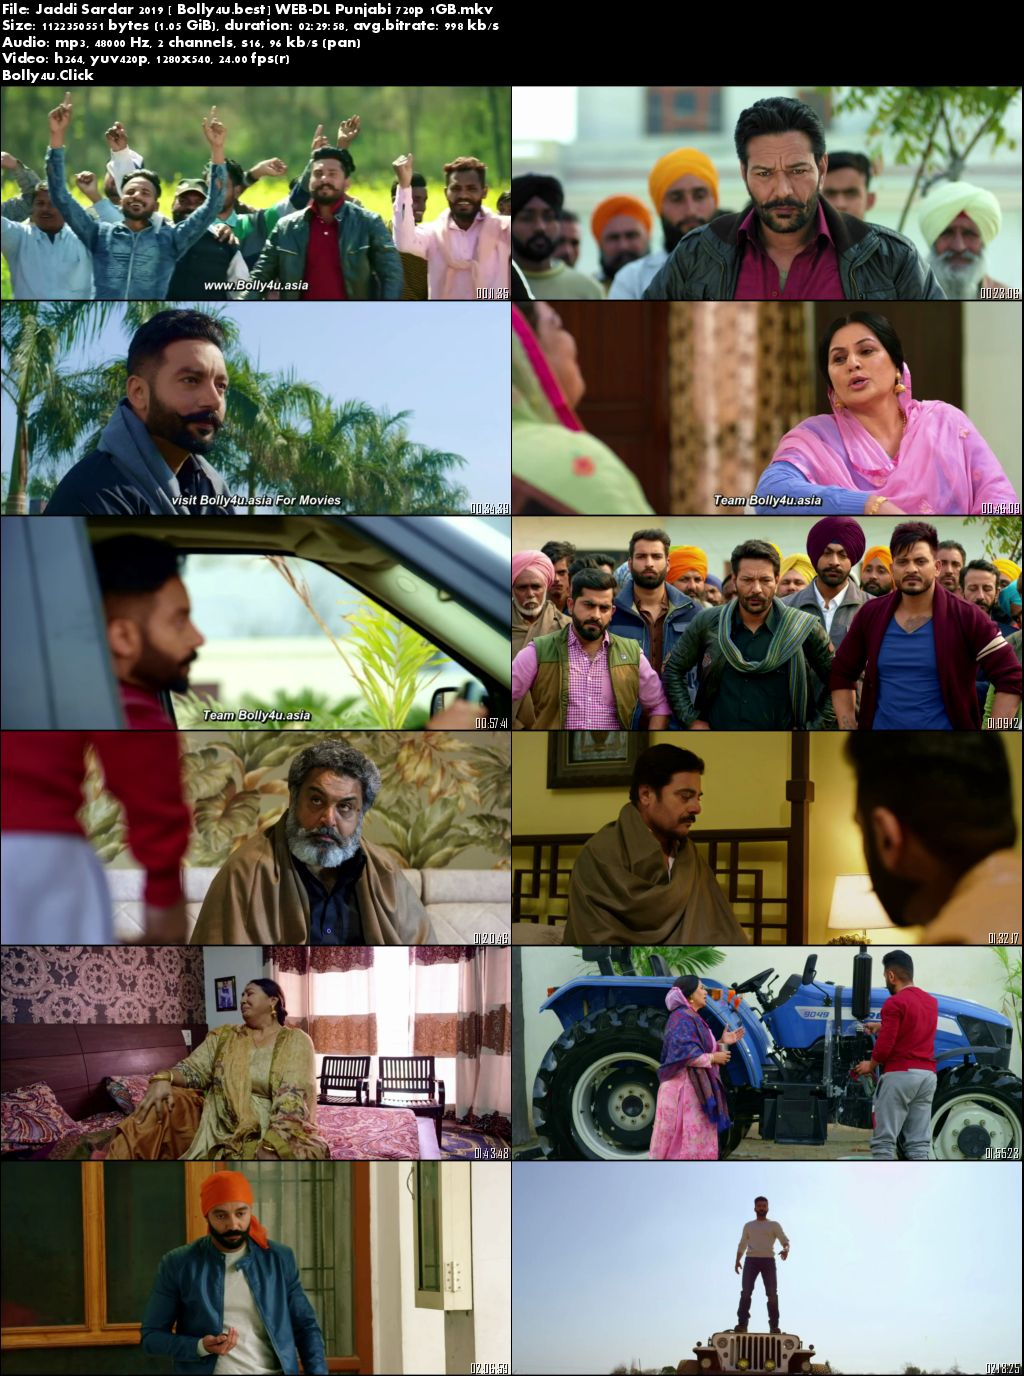 Jaddi Sardar 2019 WEB-DL 1GB Punjabi 720p Download